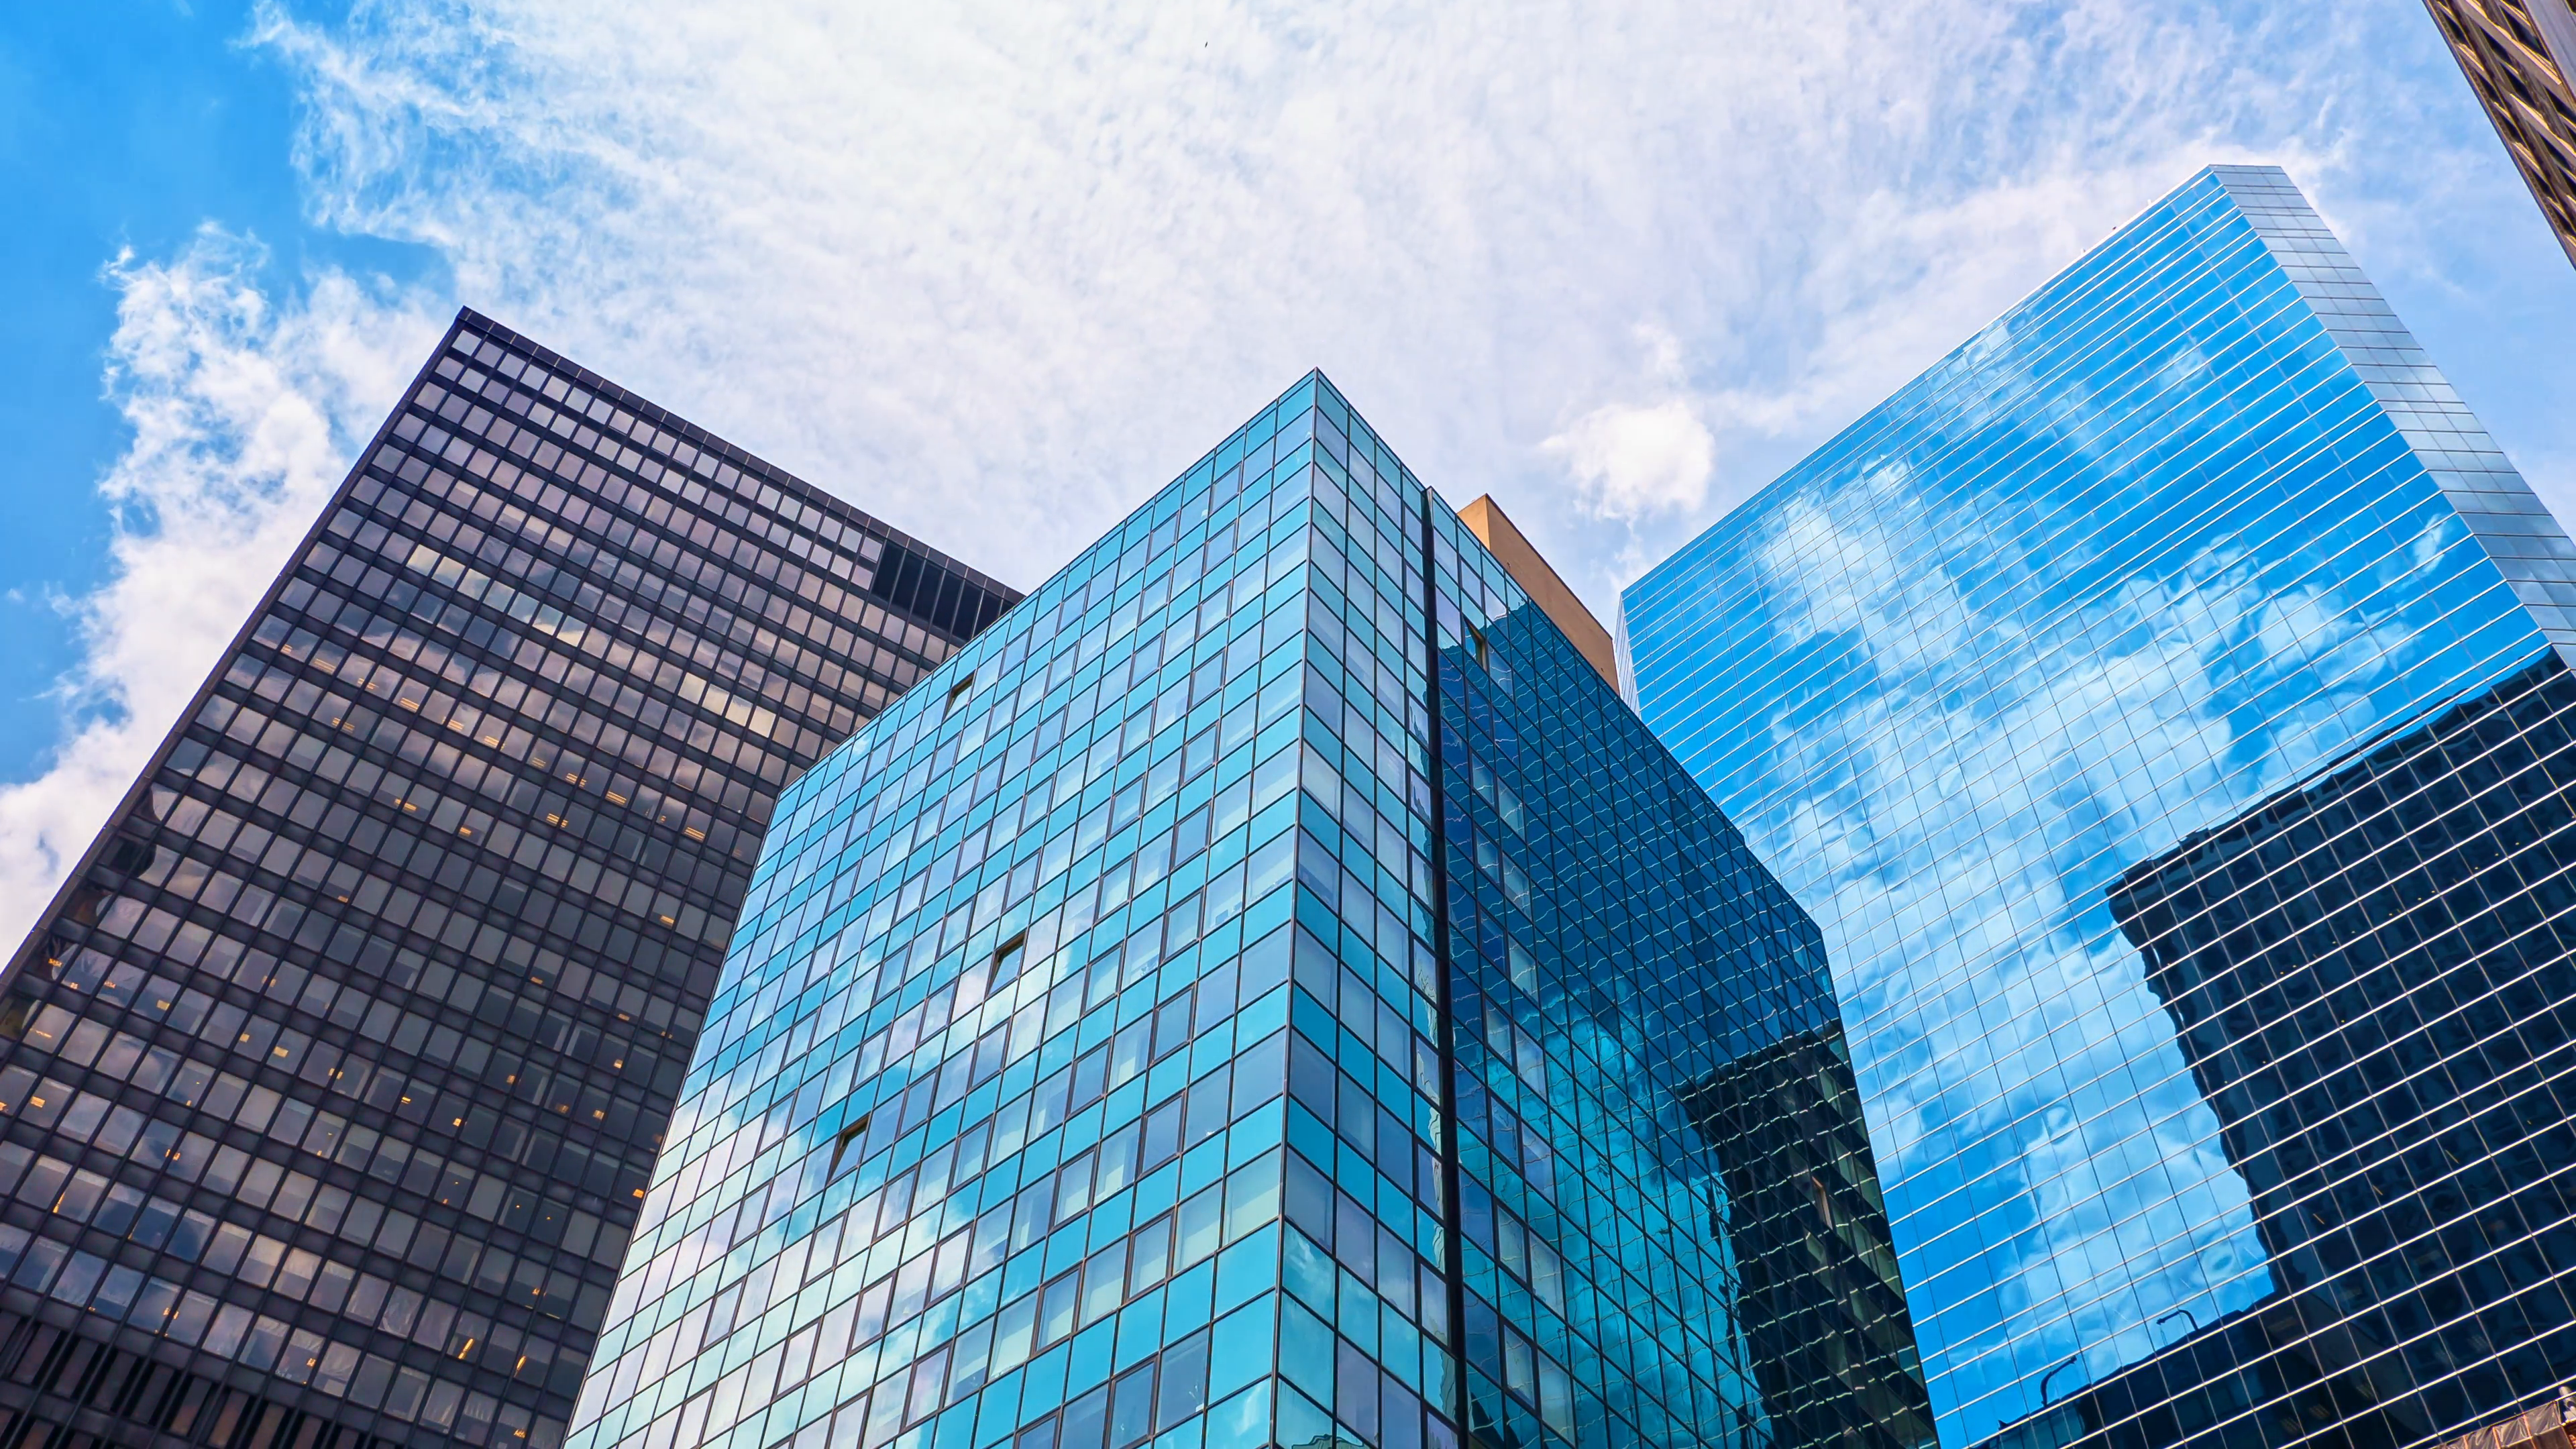 Glass skyscrapers blue sky reflection mirror facades corporate ...